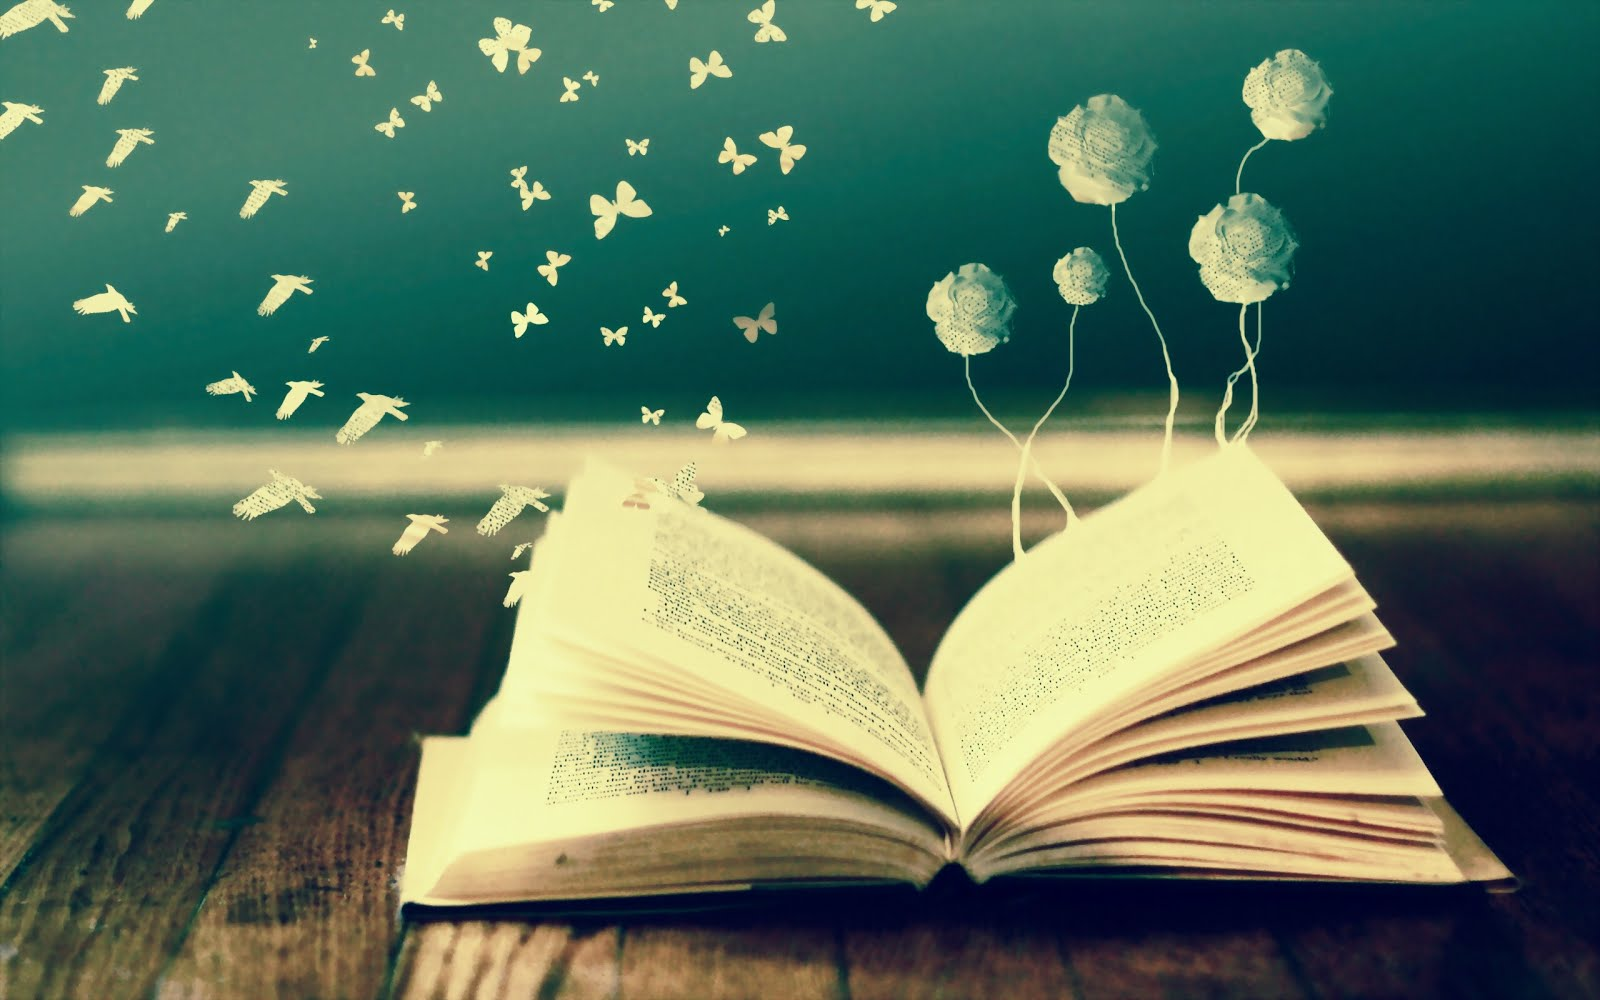 A good book is magical...